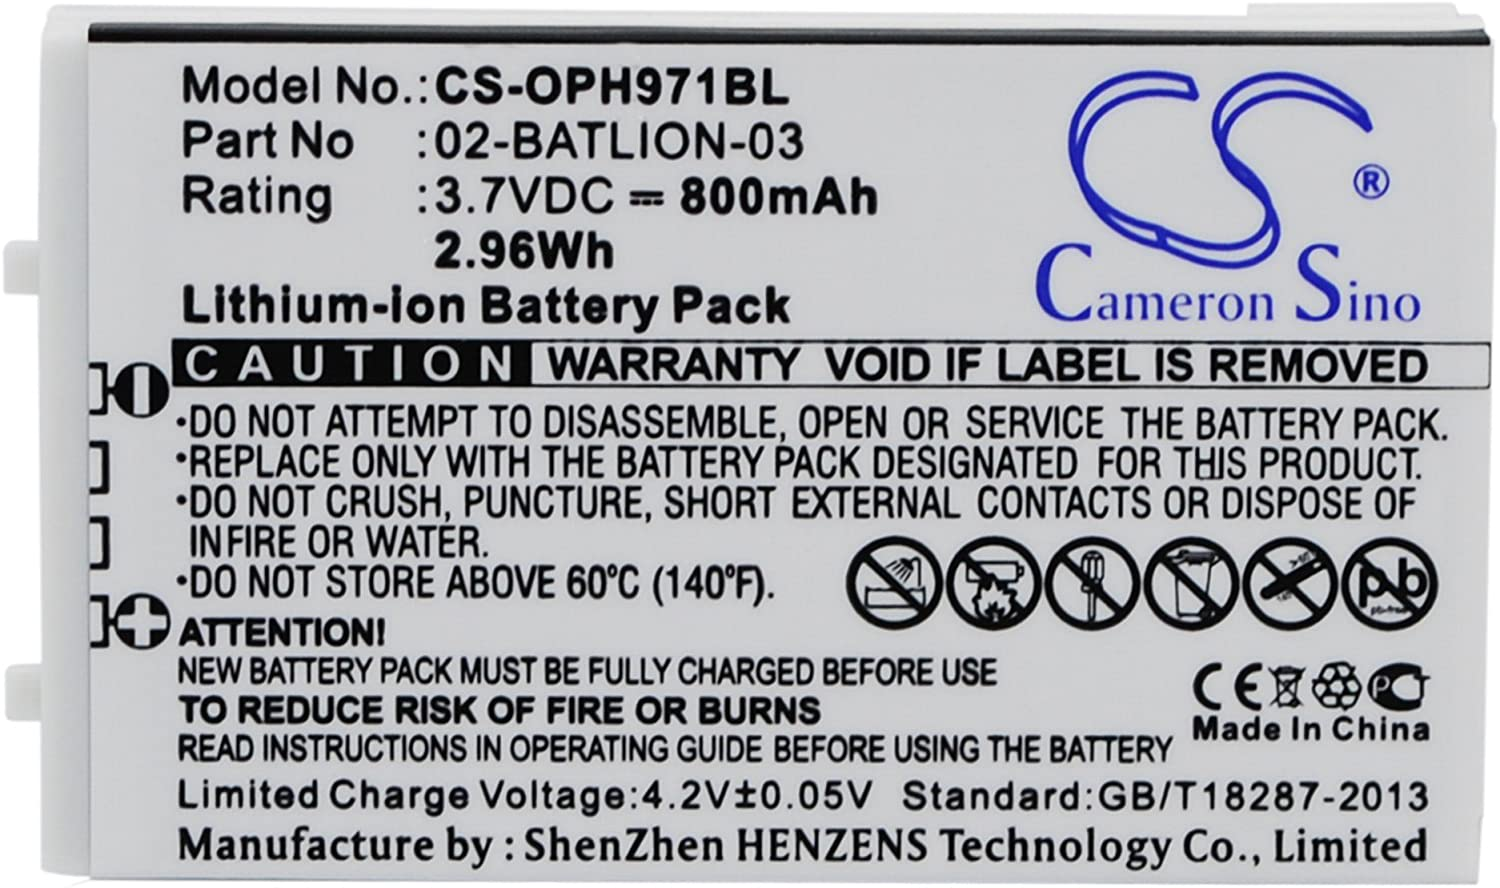 Battery Pack 11267 Replacement for Opticon OPL-9728 800mAh